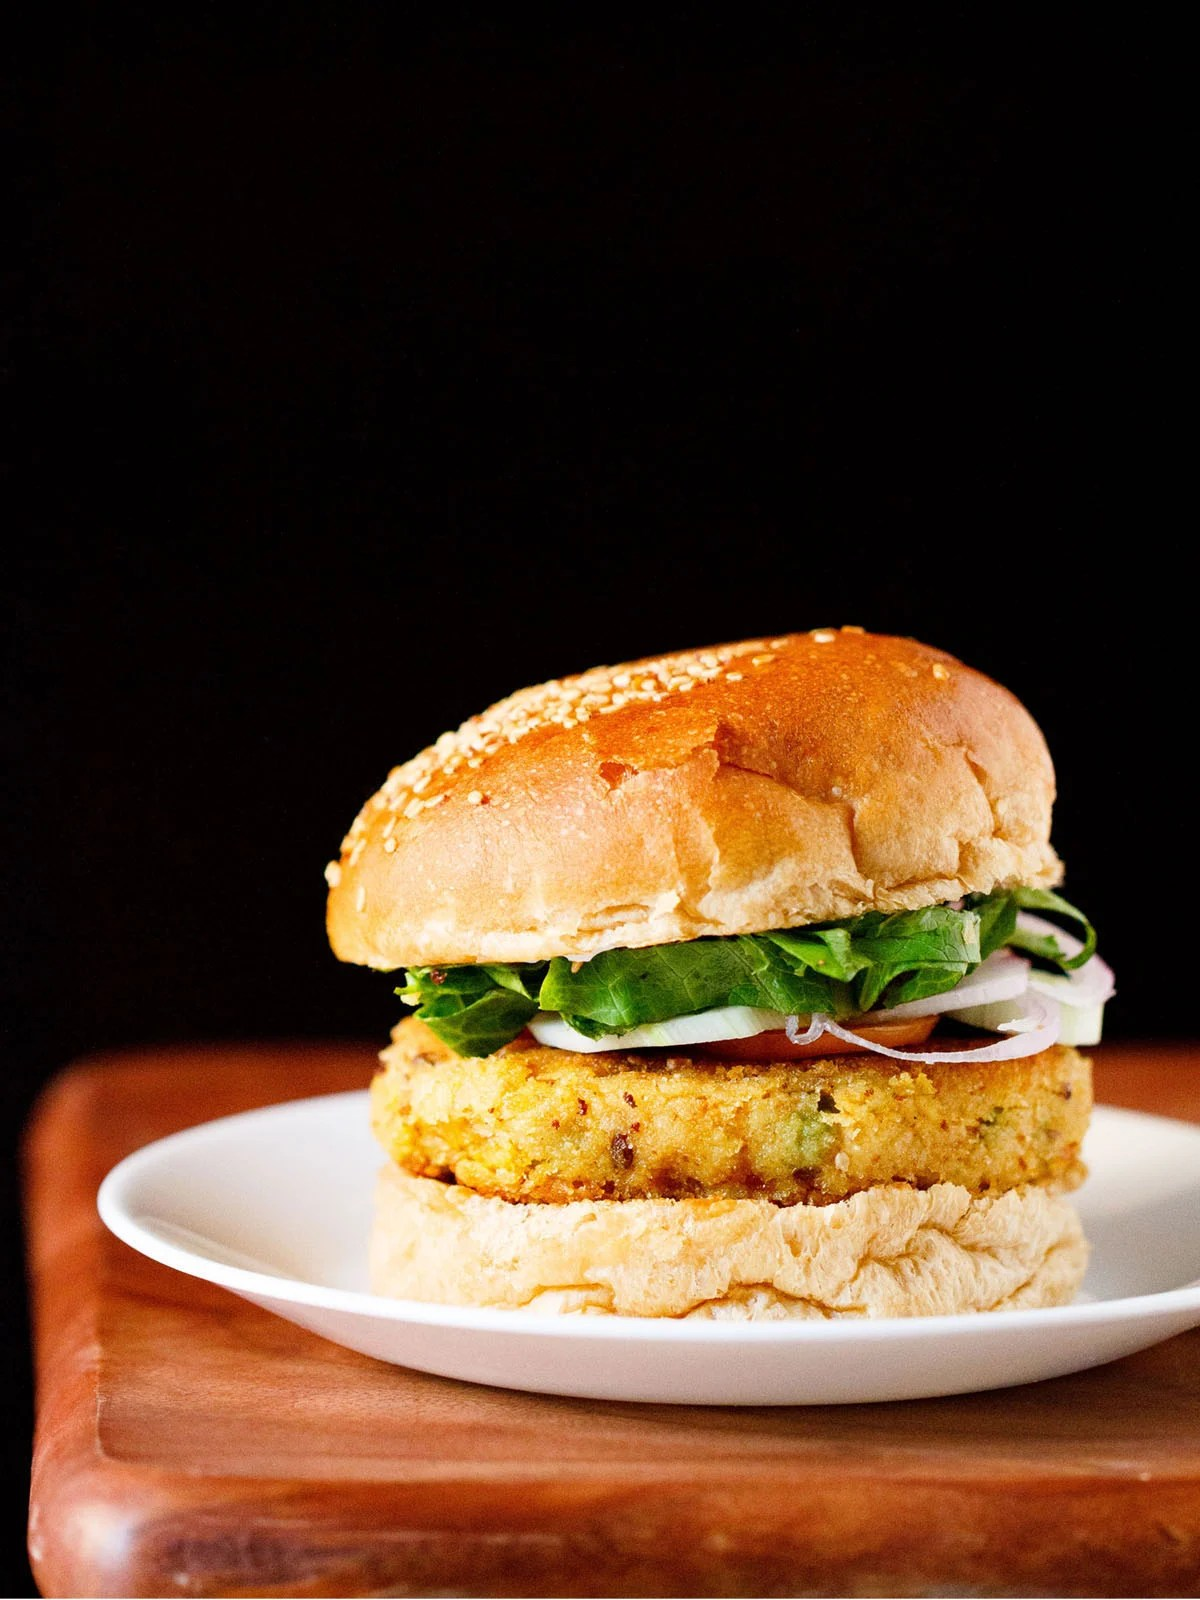 veggie burger on a white plate on wooden board with a black backdrop